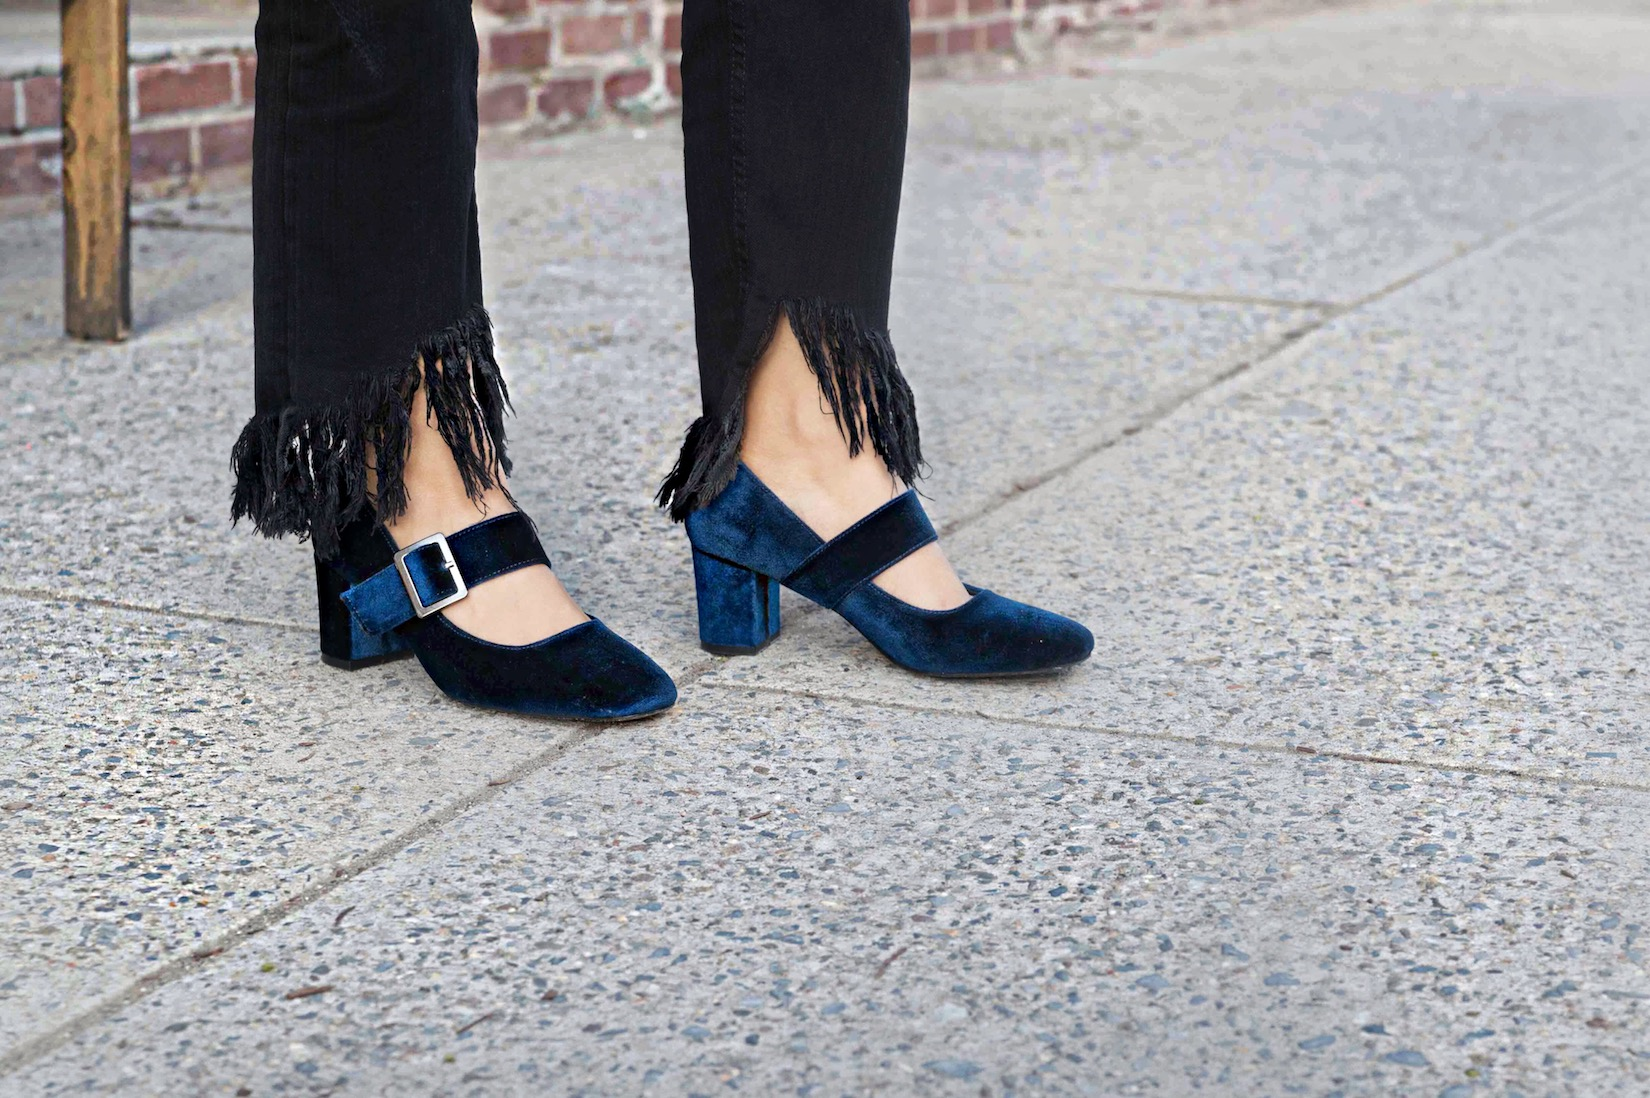 zara-fringe-jeans-velvet-mary-jane-shoes-3